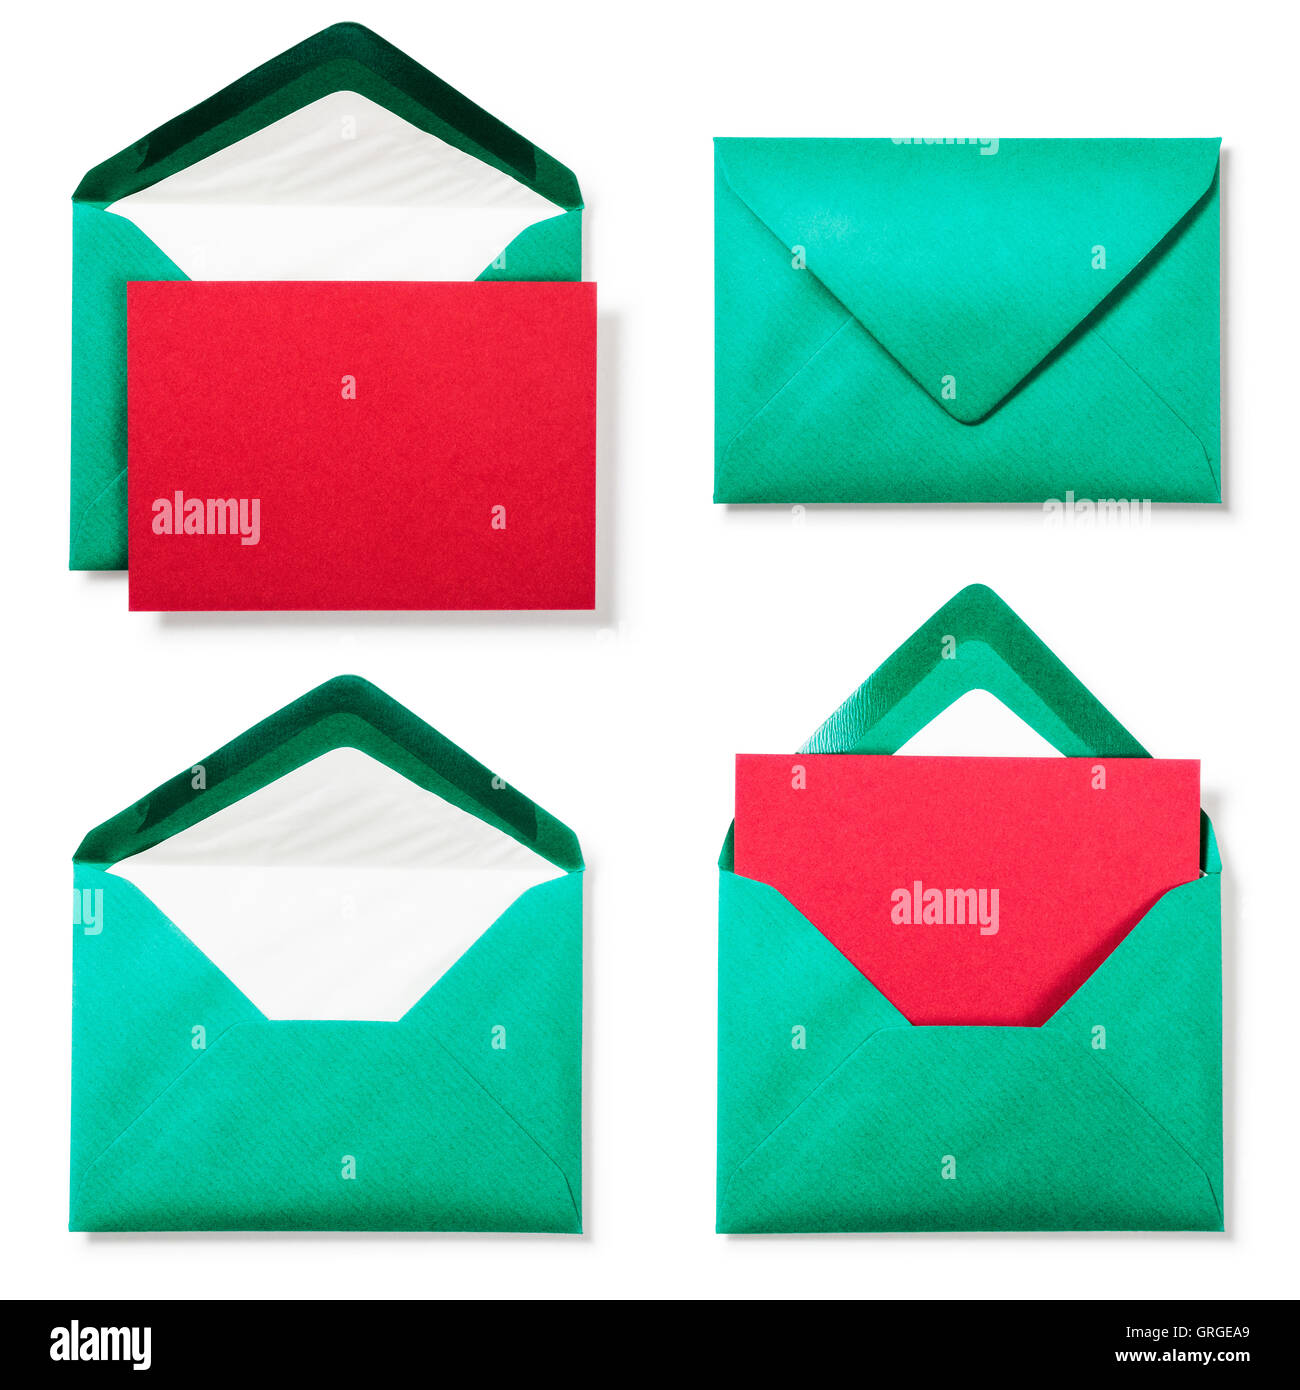 Green Envelope With Red Greeting Card Collection On White Background